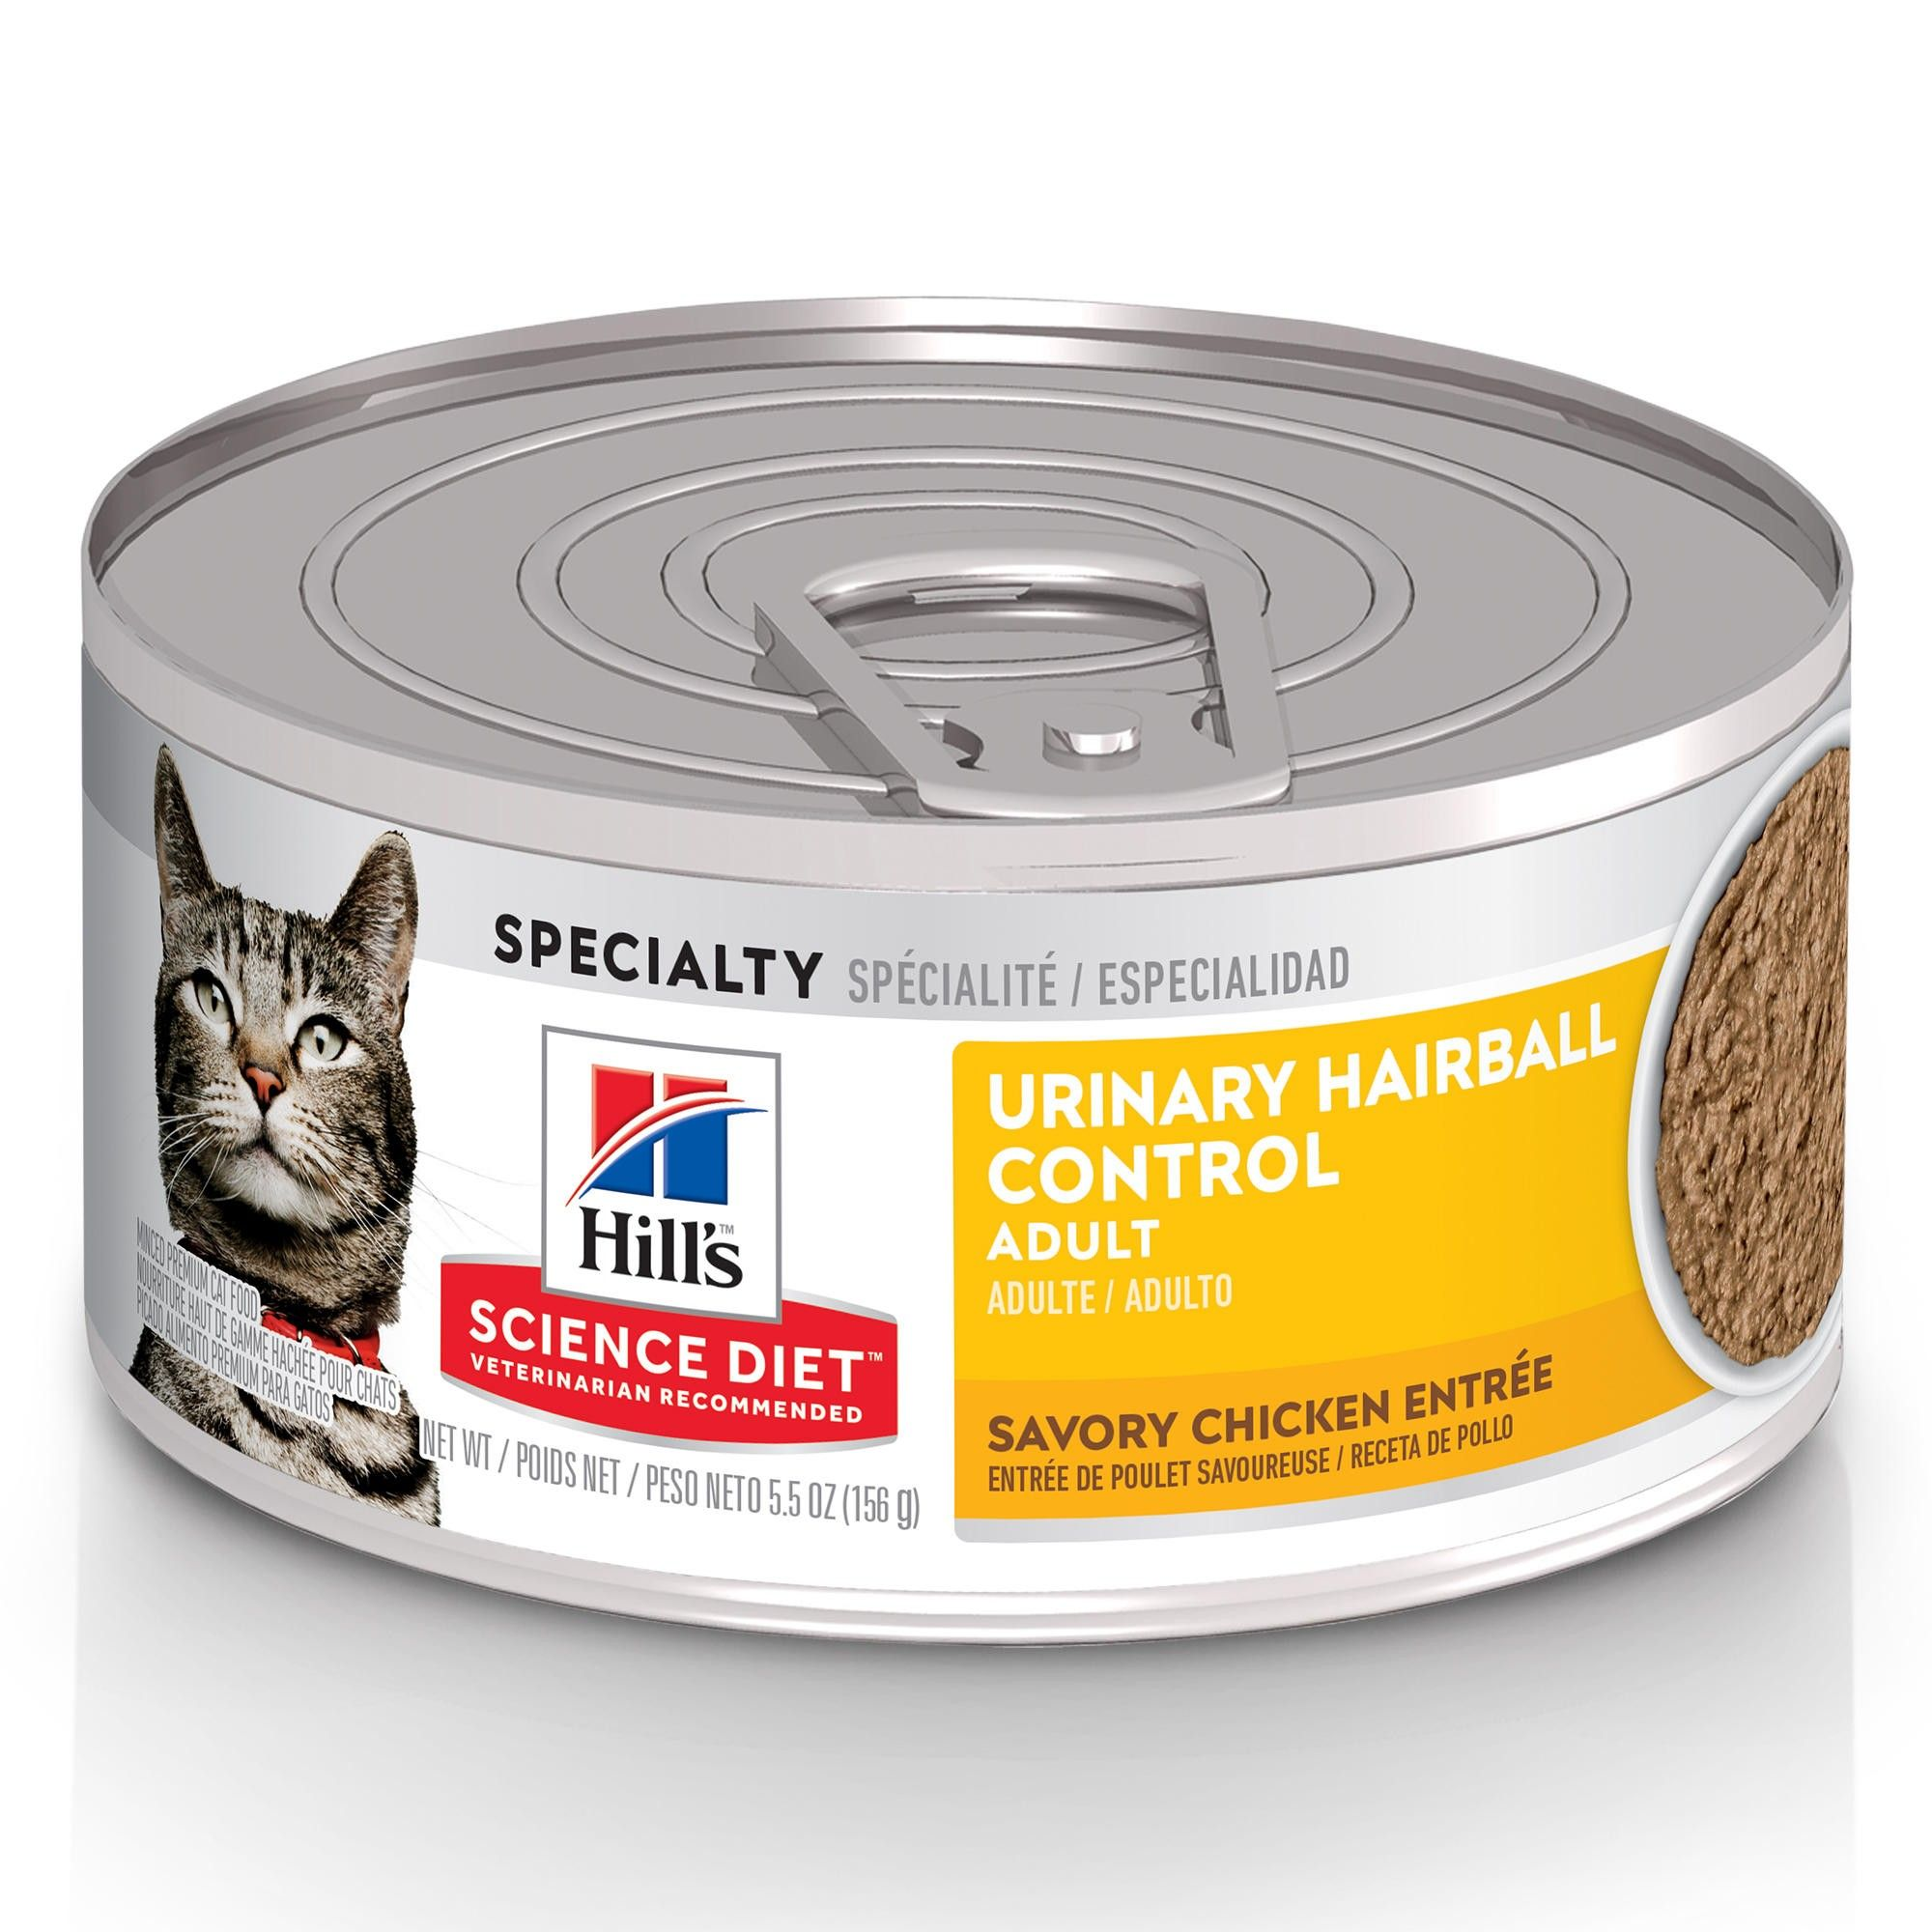 Hill's Science Diet Adult Urinary Hairball Control Chicken Entree Canned Cat Food, 5.5-oz